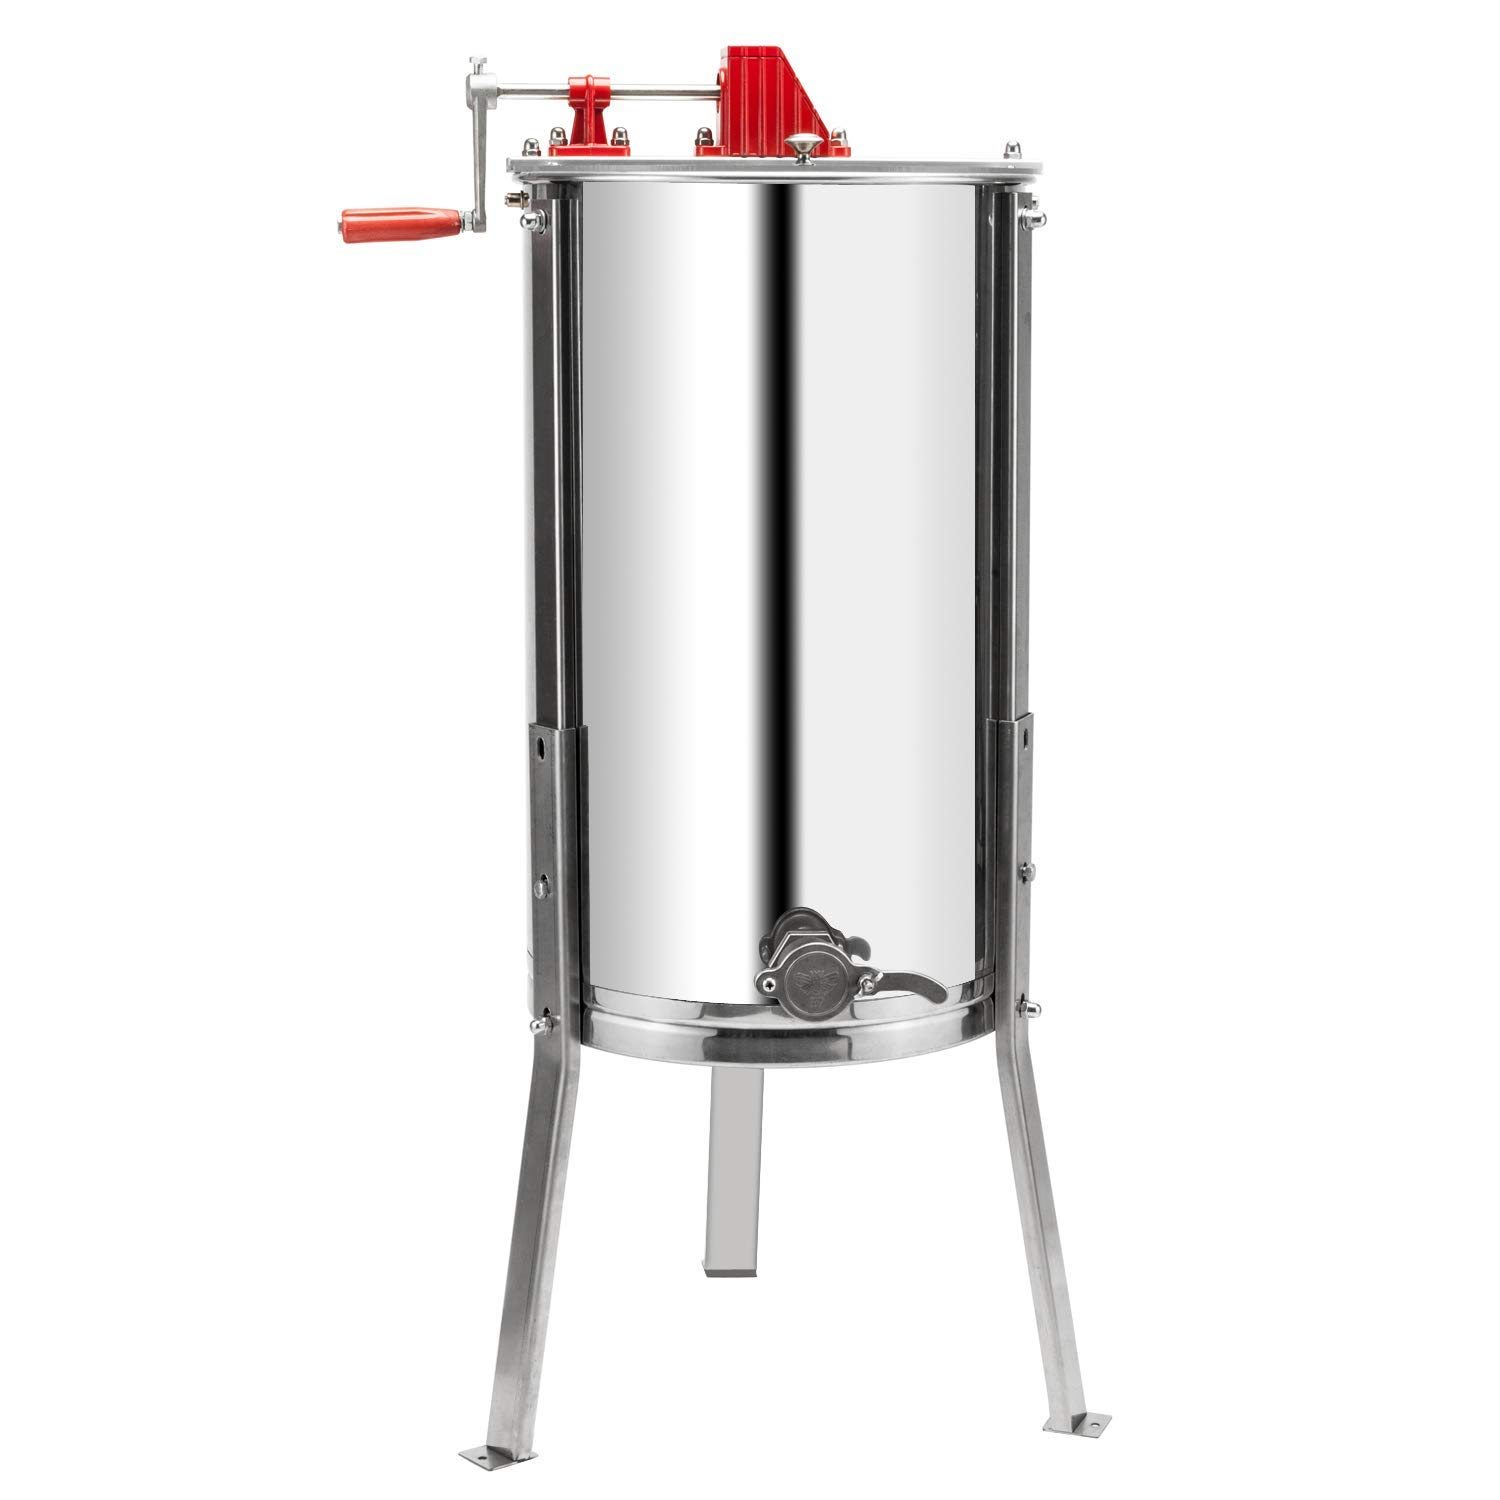 VINGLI Upgraded 3 Frame Honey Extractor Separator, Food Grade Stainless Steel Honeycomb Spinner Drum Manual Crank with Adjustable Height Stands,Beekeeping Pro Extraction Apiary Centrifuge Equipment by VINGLI